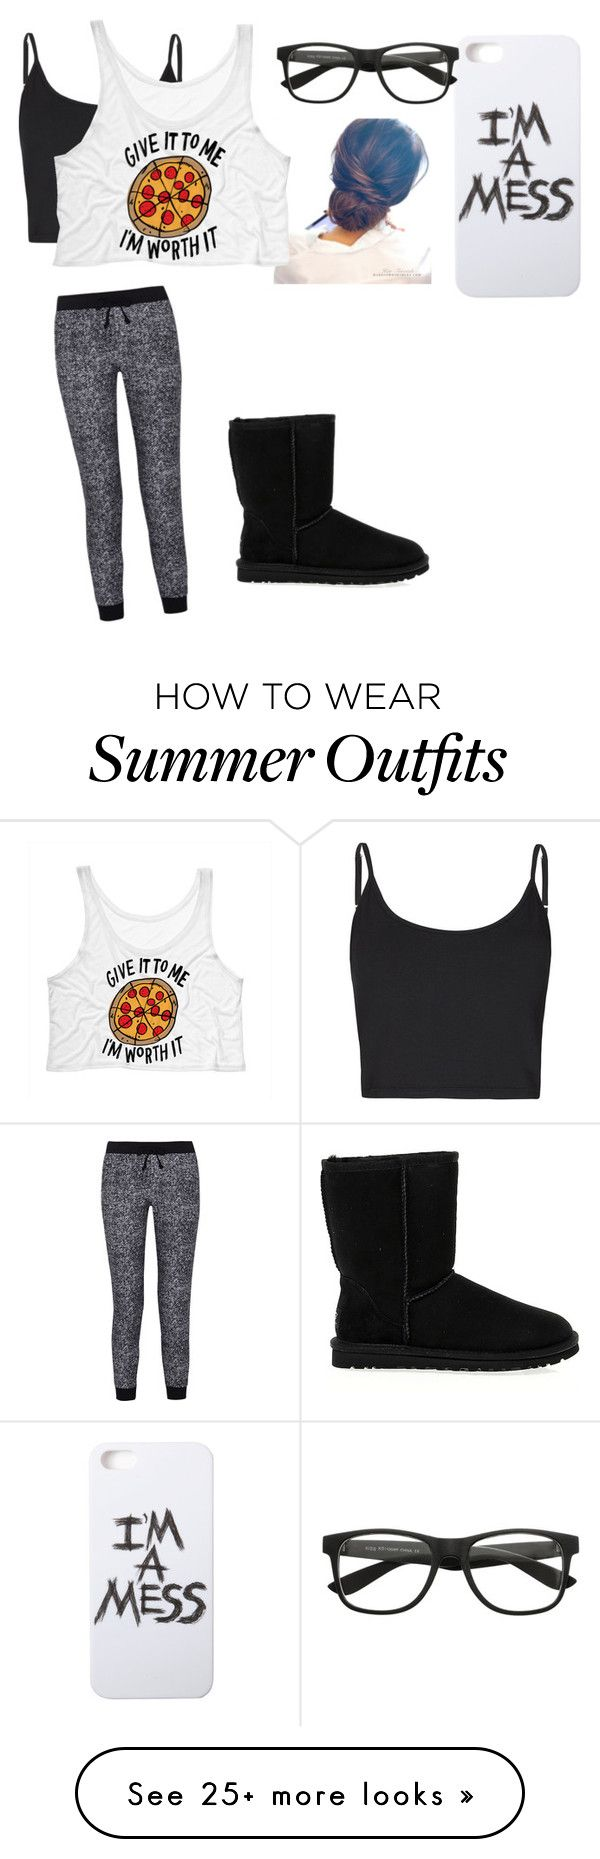 """Untitled #299"" by panda-love-me on Polyvore featuring LAUREN MOSHI, Bibee, Splendid and UGG Australia"